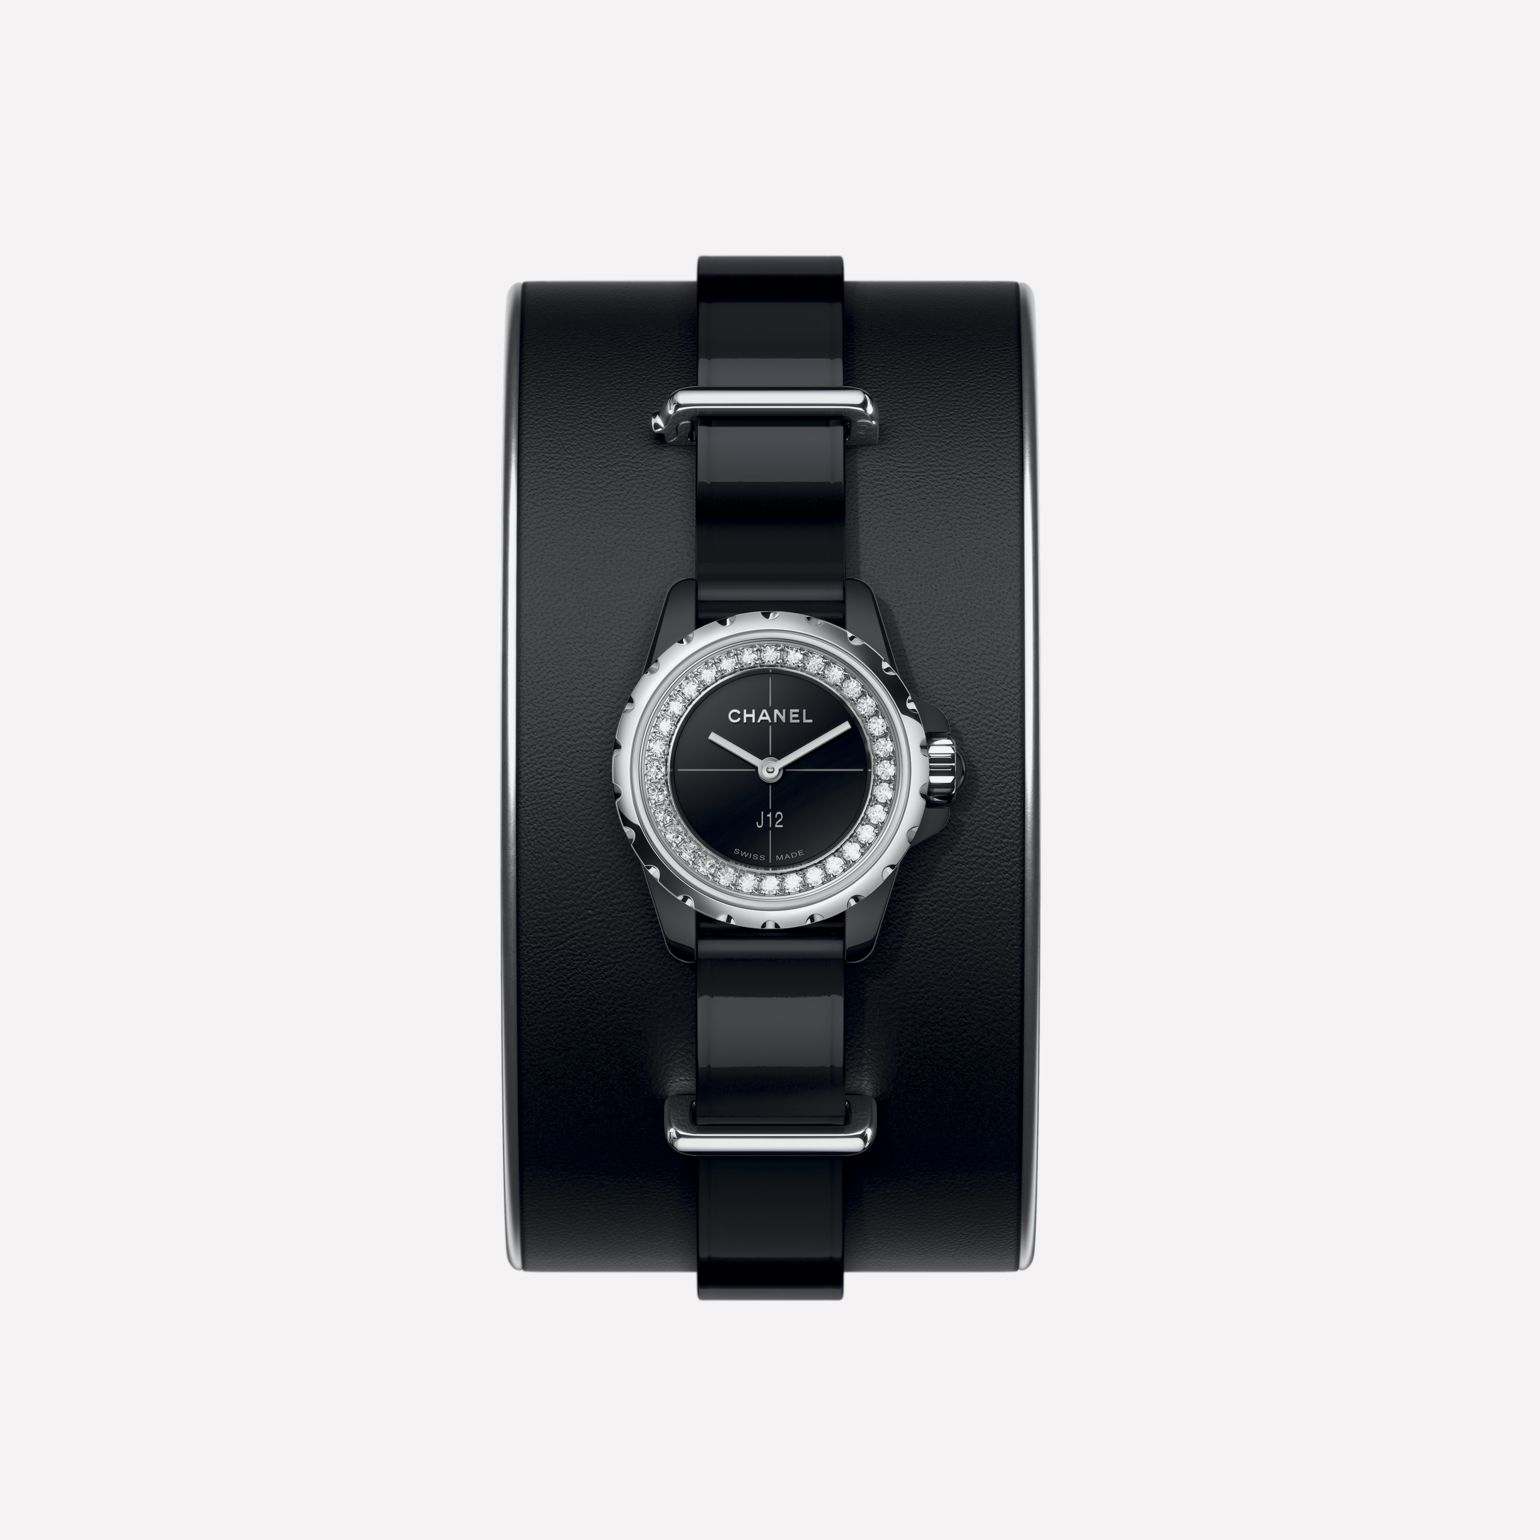 J12·XS Small cuff in black leather, black highly resistant ceramic and steel, flange set with diamonds